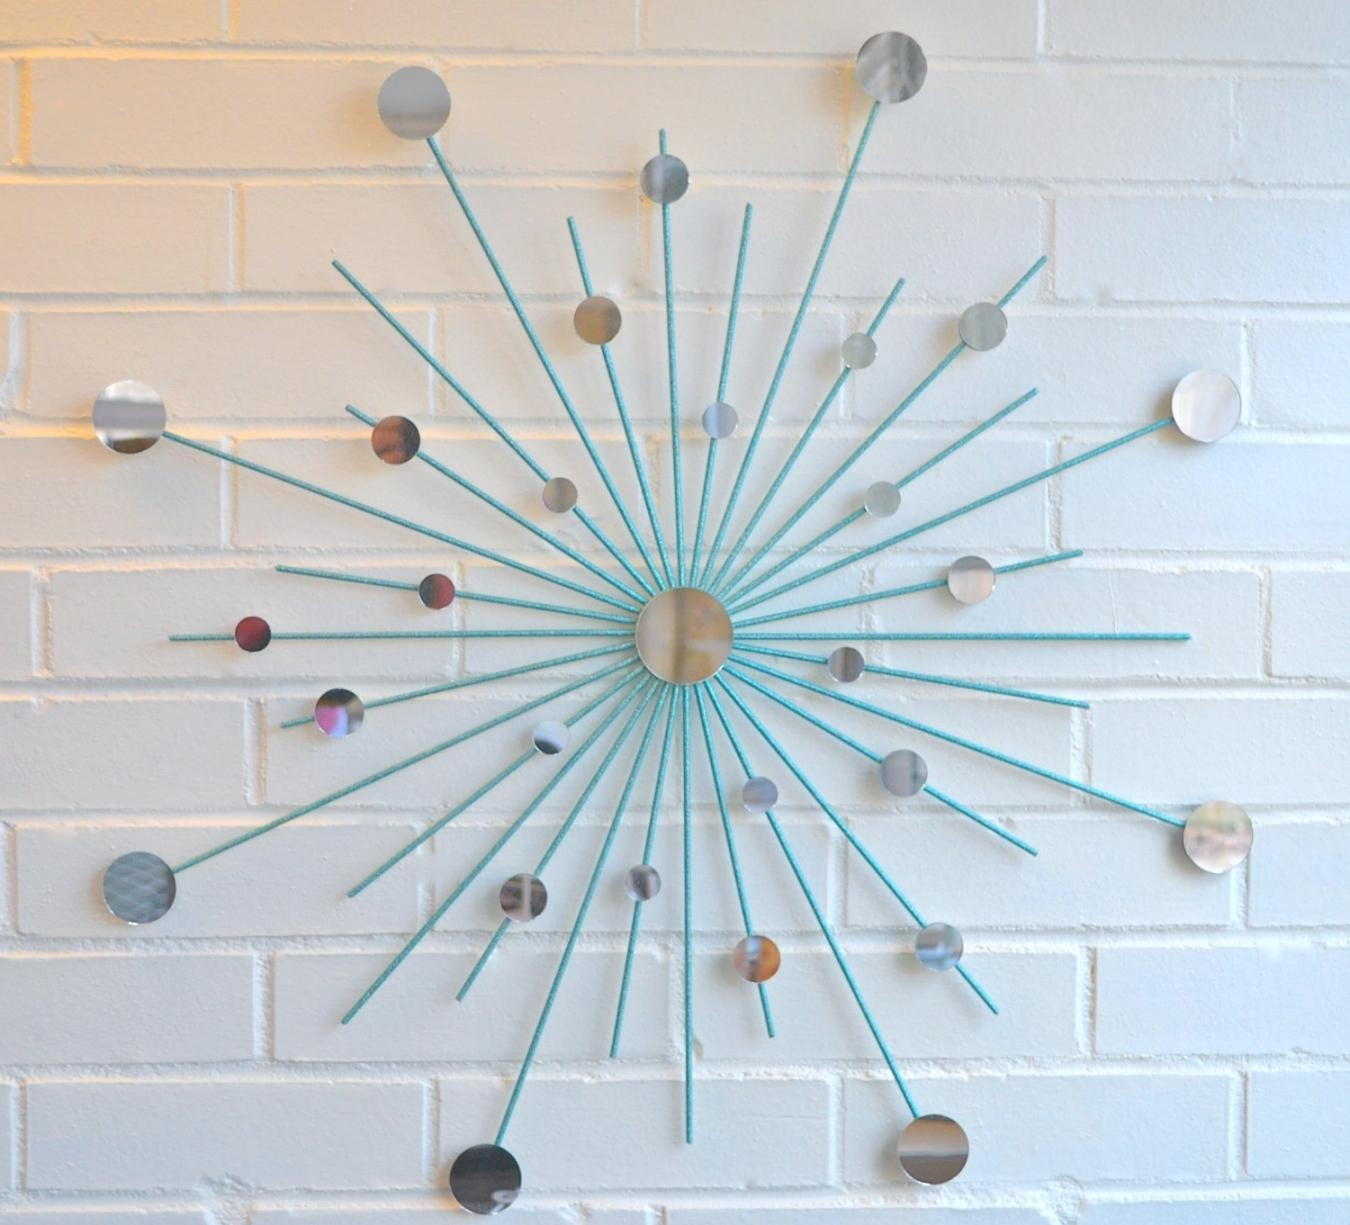 Modern Metal Wall Art Mirror Mod Style Star Starburst Sun Sunburst Inside Teal Metal Wall Art (View 15 of 20)